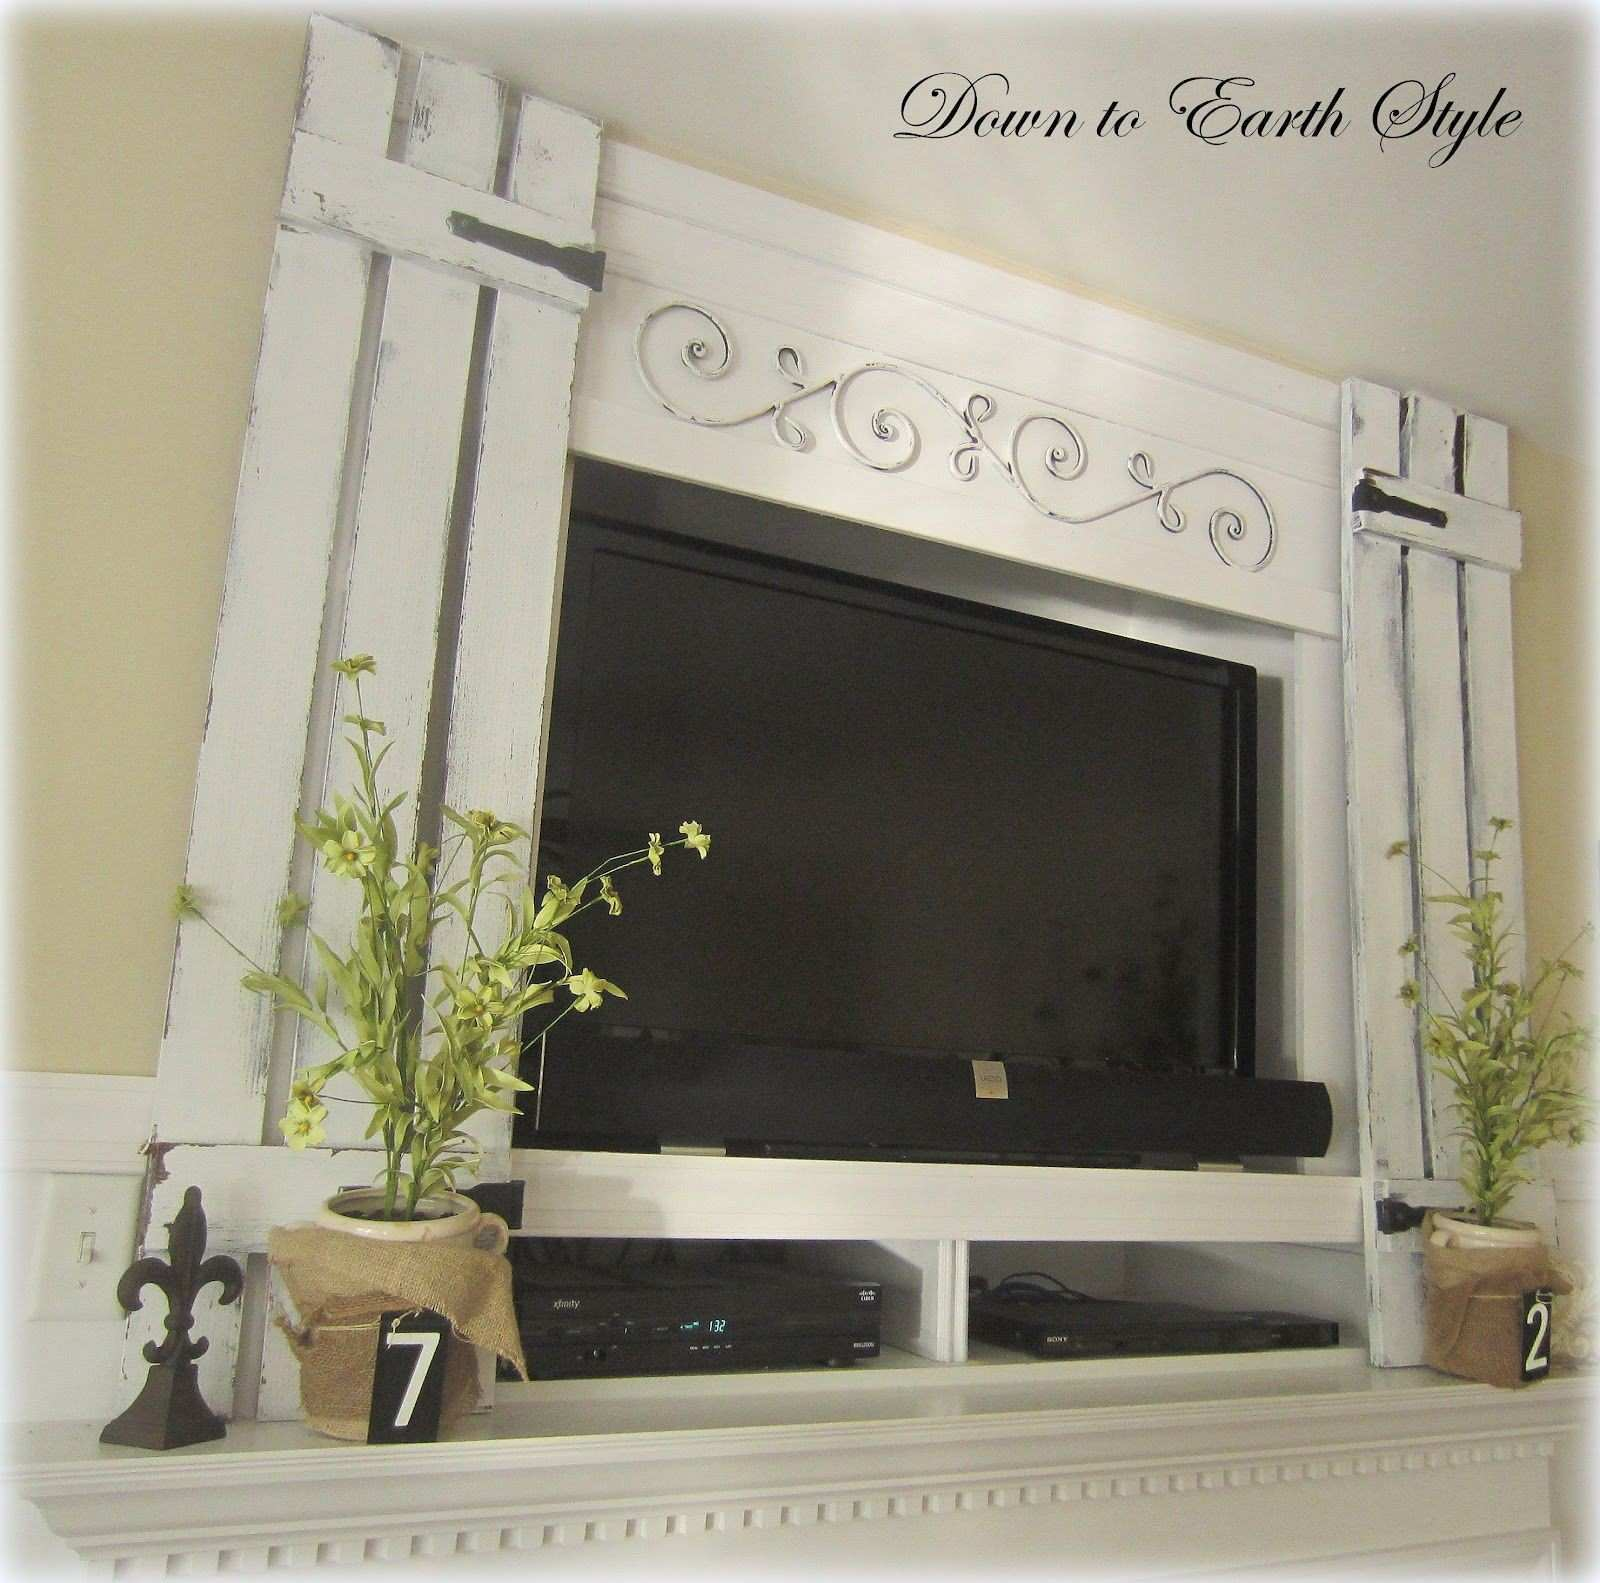 Creative fix for a TV above the fireplace Down to Earth Style